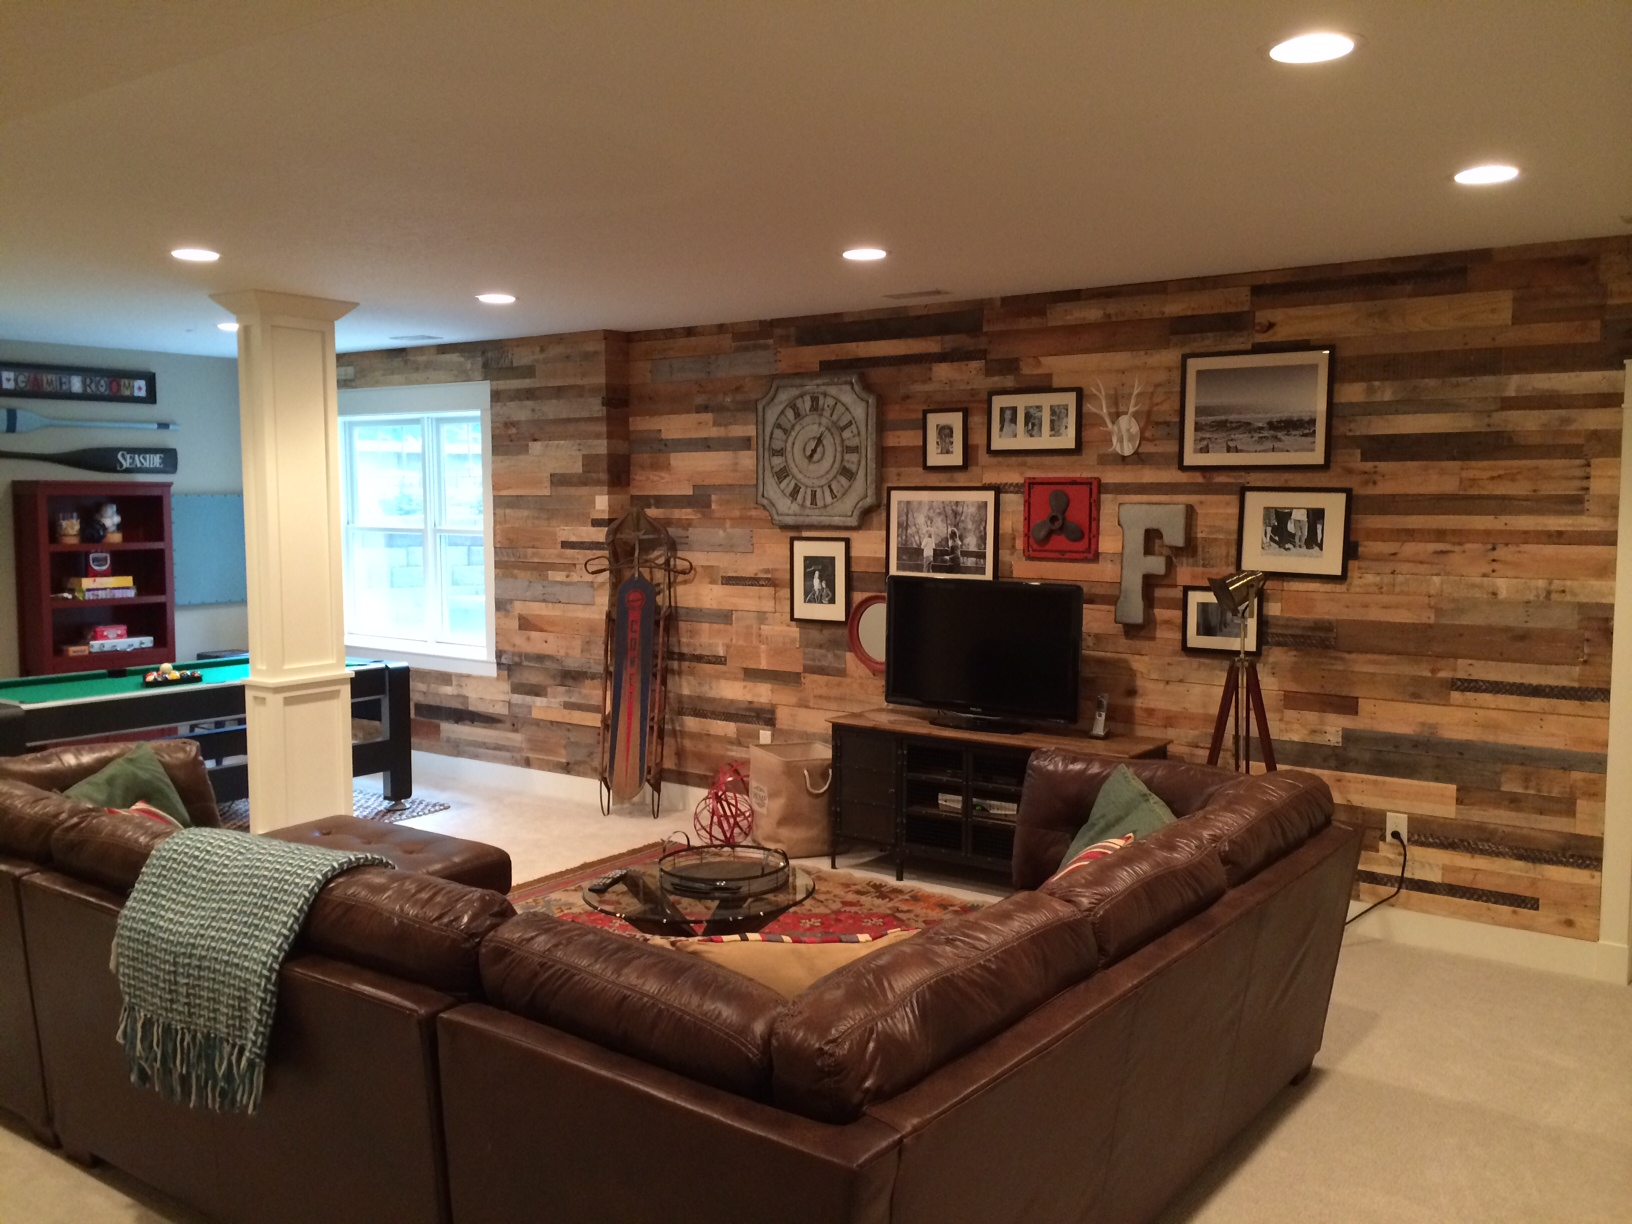 Recycled Pallet Wood Accent Wall Sustainable Lumber pany